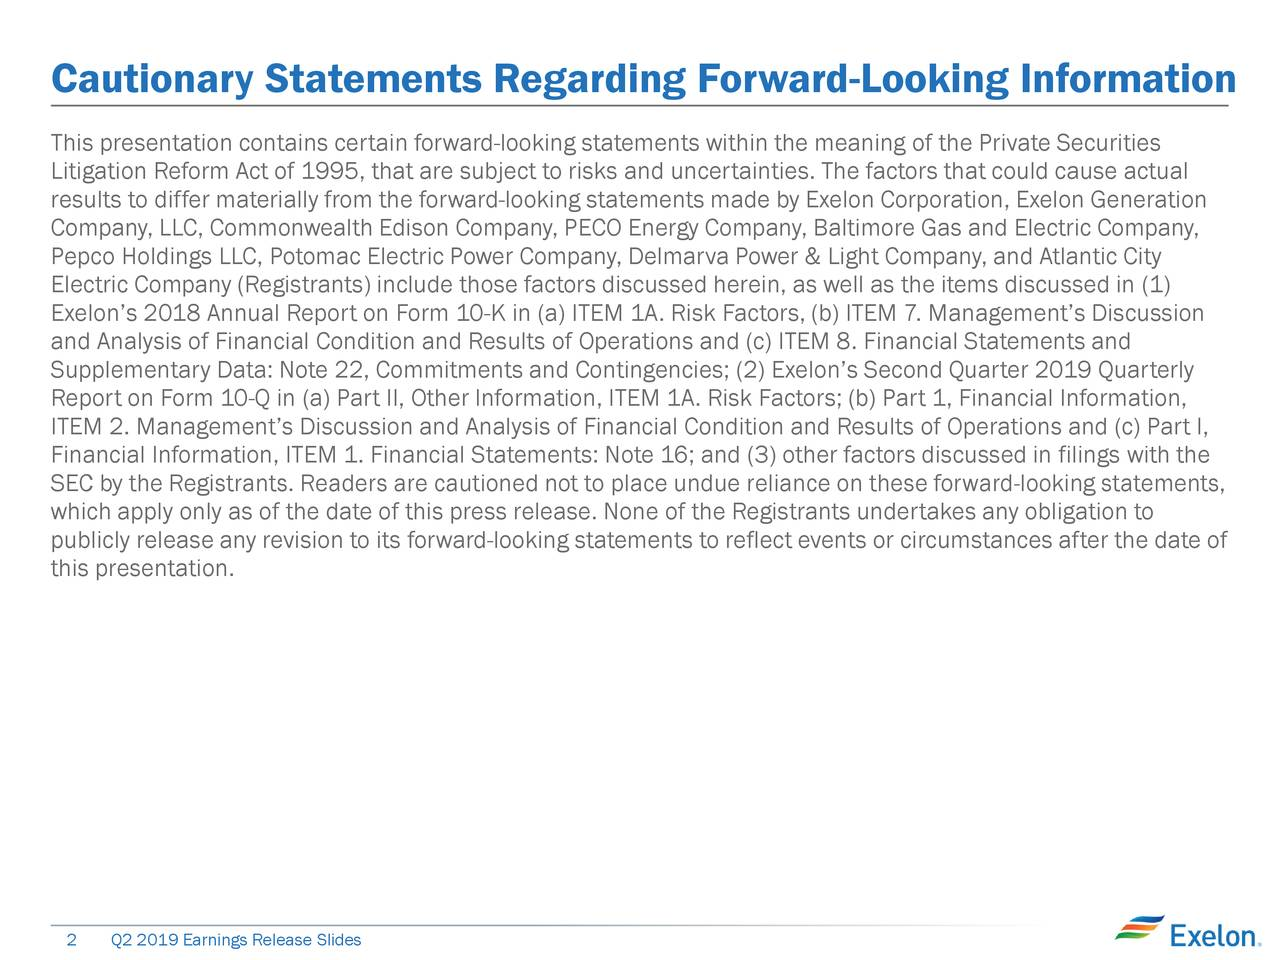 Cautionary Statements Regarding Forward-Looking Information